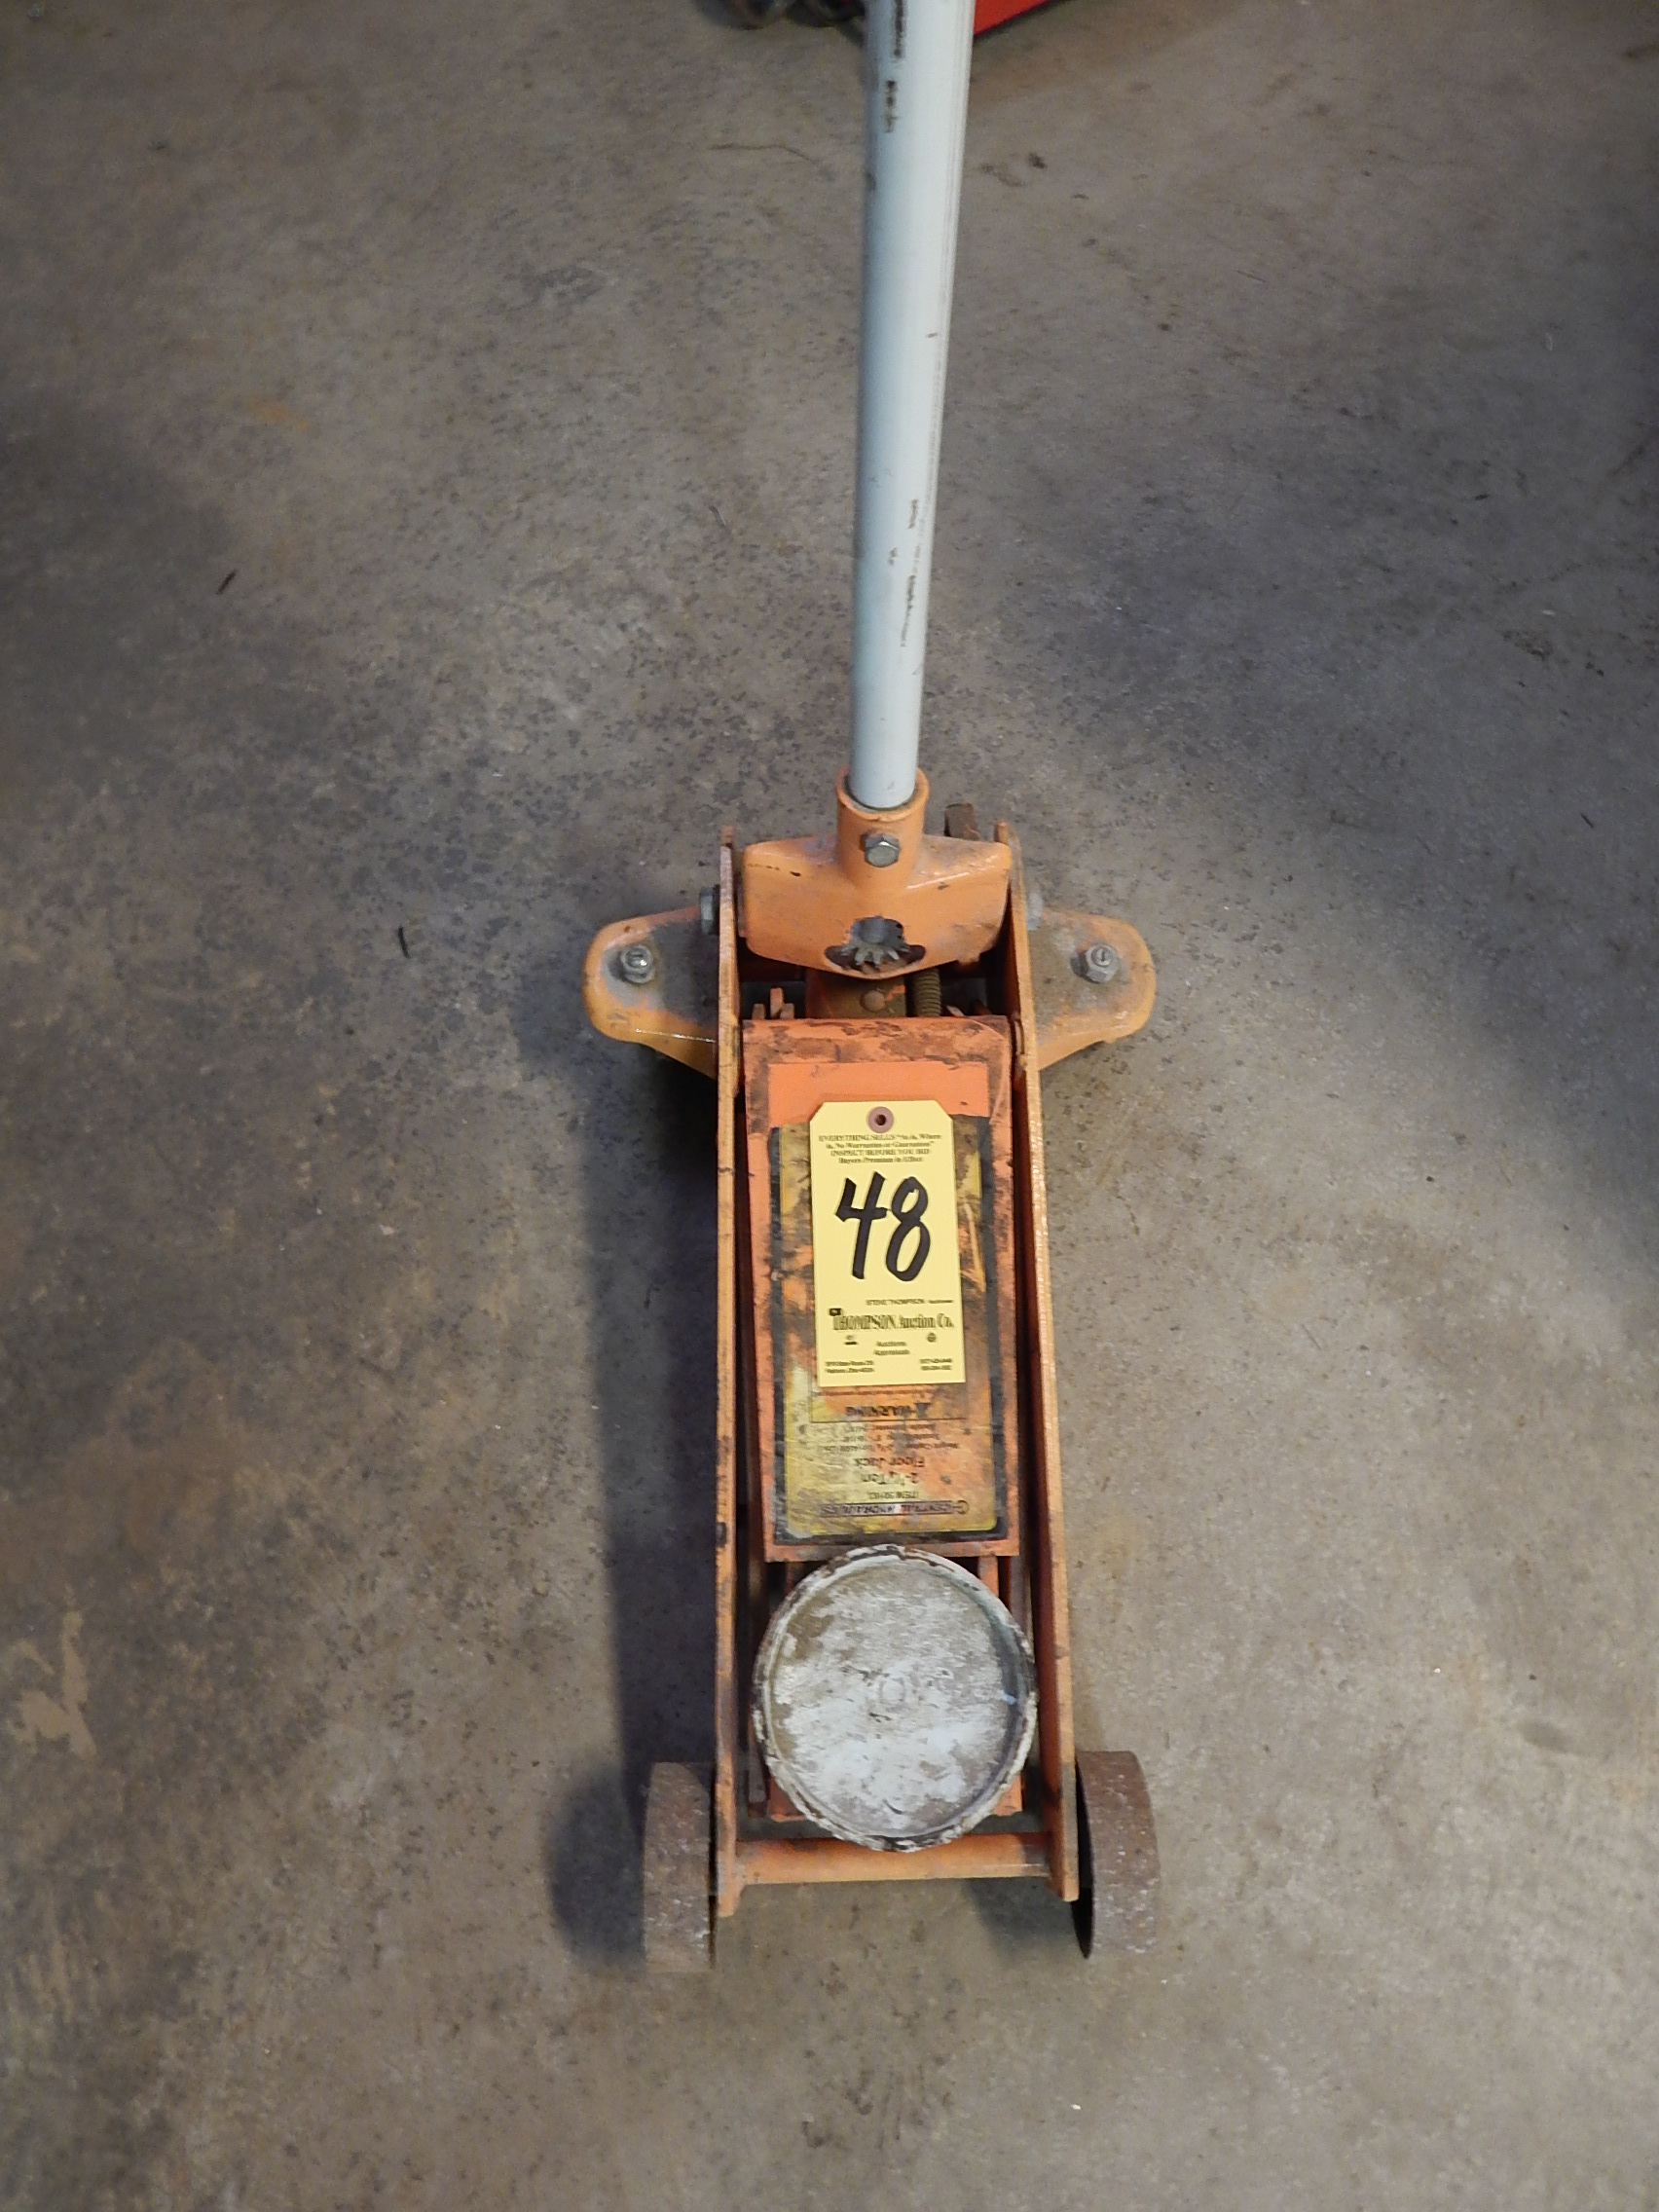 Lot 48 - Central Hydraulic 2 1/4 Ton Floor Jack